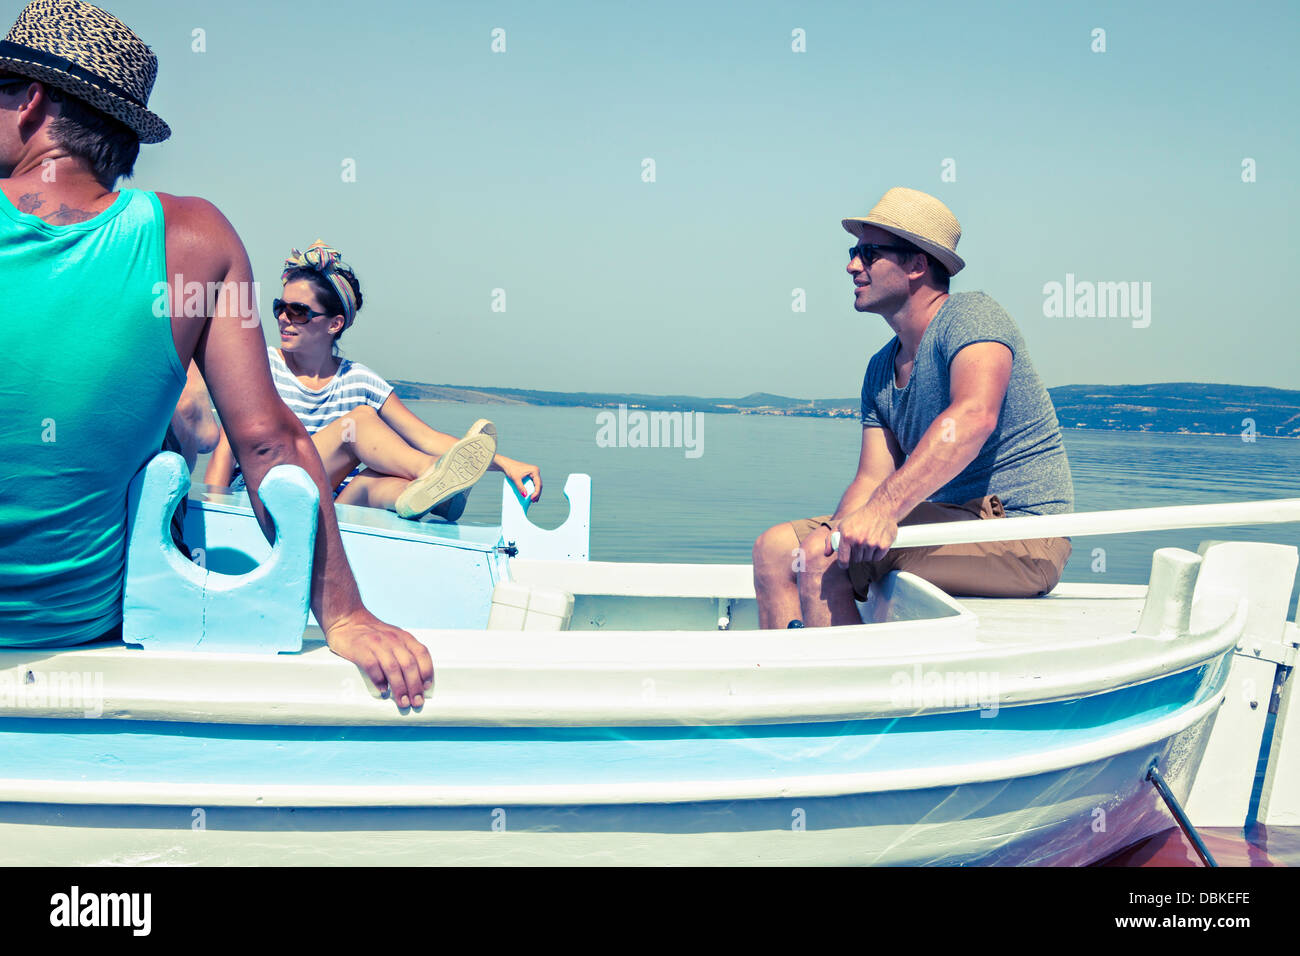 Croatia, Dalmatia, Young  people on a boat trip - Stock Image